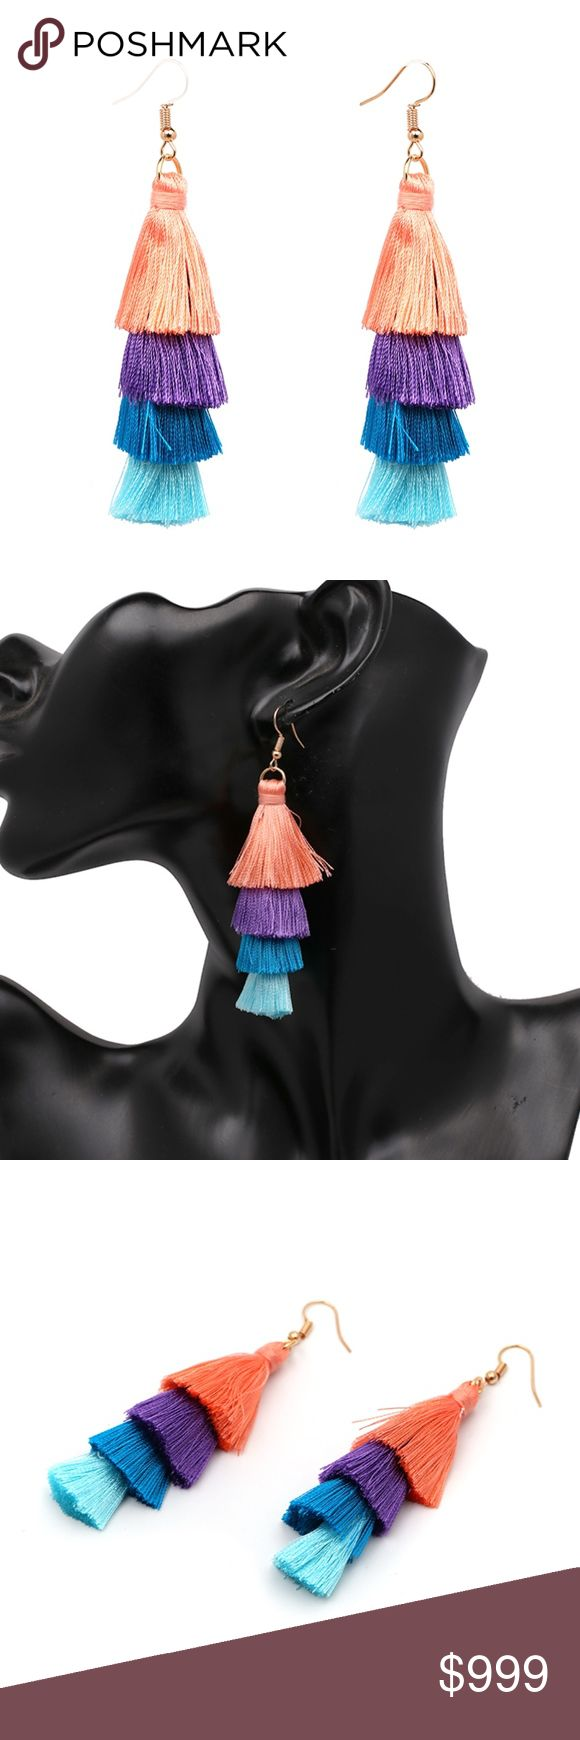 COMING SOON!! Fringe Tassel Statement Earrings Coming Soon!! (Price available upon arrival). Brand new in original packaging. Boho colorful fringe tassel statement earrings perfect for music festival apparel, a coachella necessity, or bring on a tropical vacation! The dangling fan tassels feature peachy coral, purple, cerulean & sky blue colors made of lightweight cotton thread.  Gold tone hook backings.  Multiple colors available! Jewelry Earrings